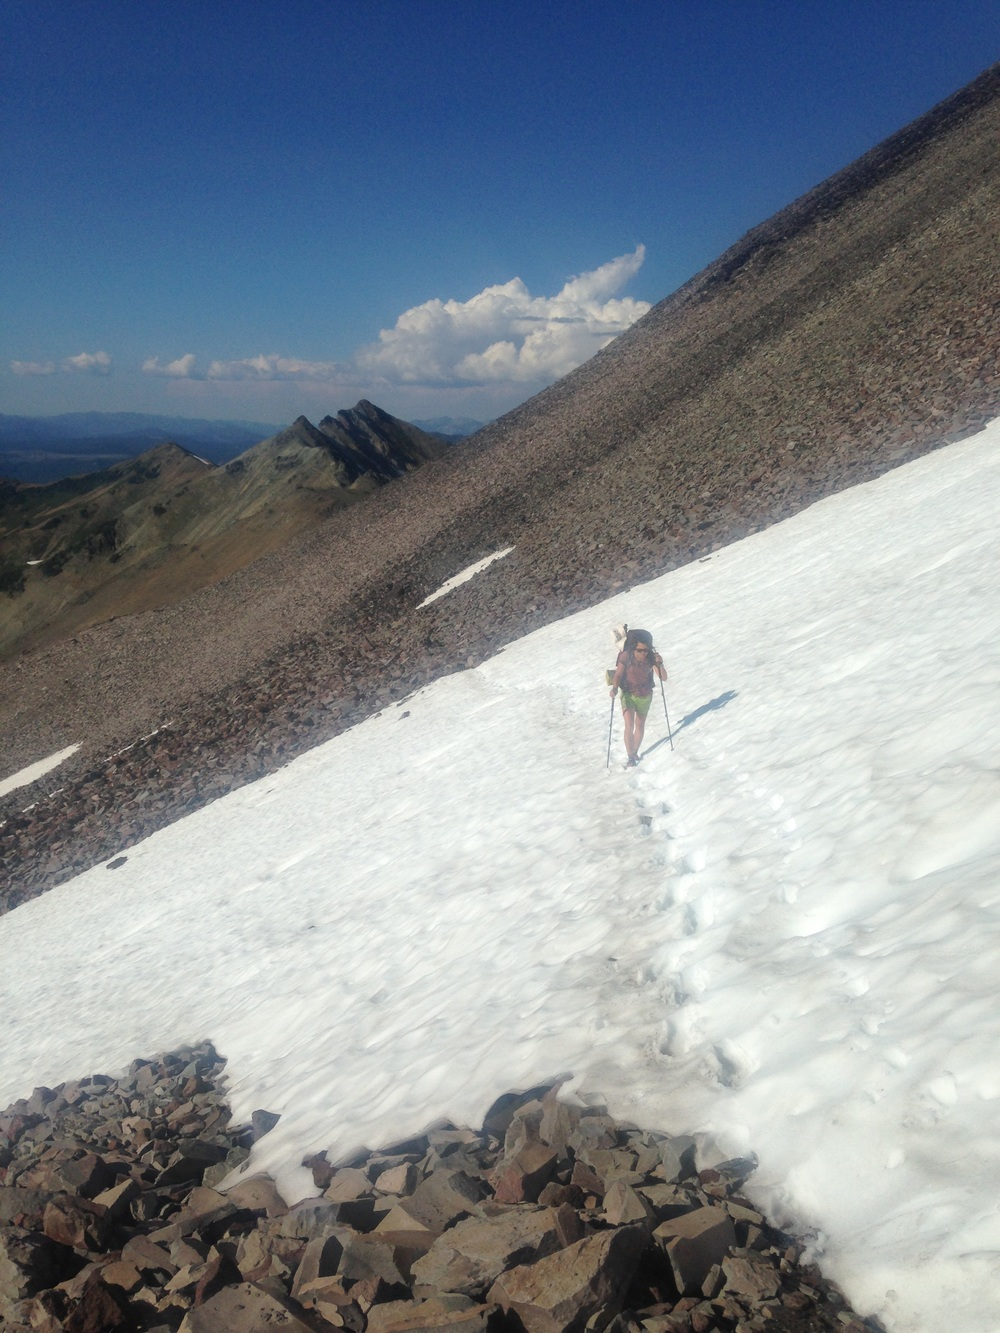 Maybe the last snowy traverse?